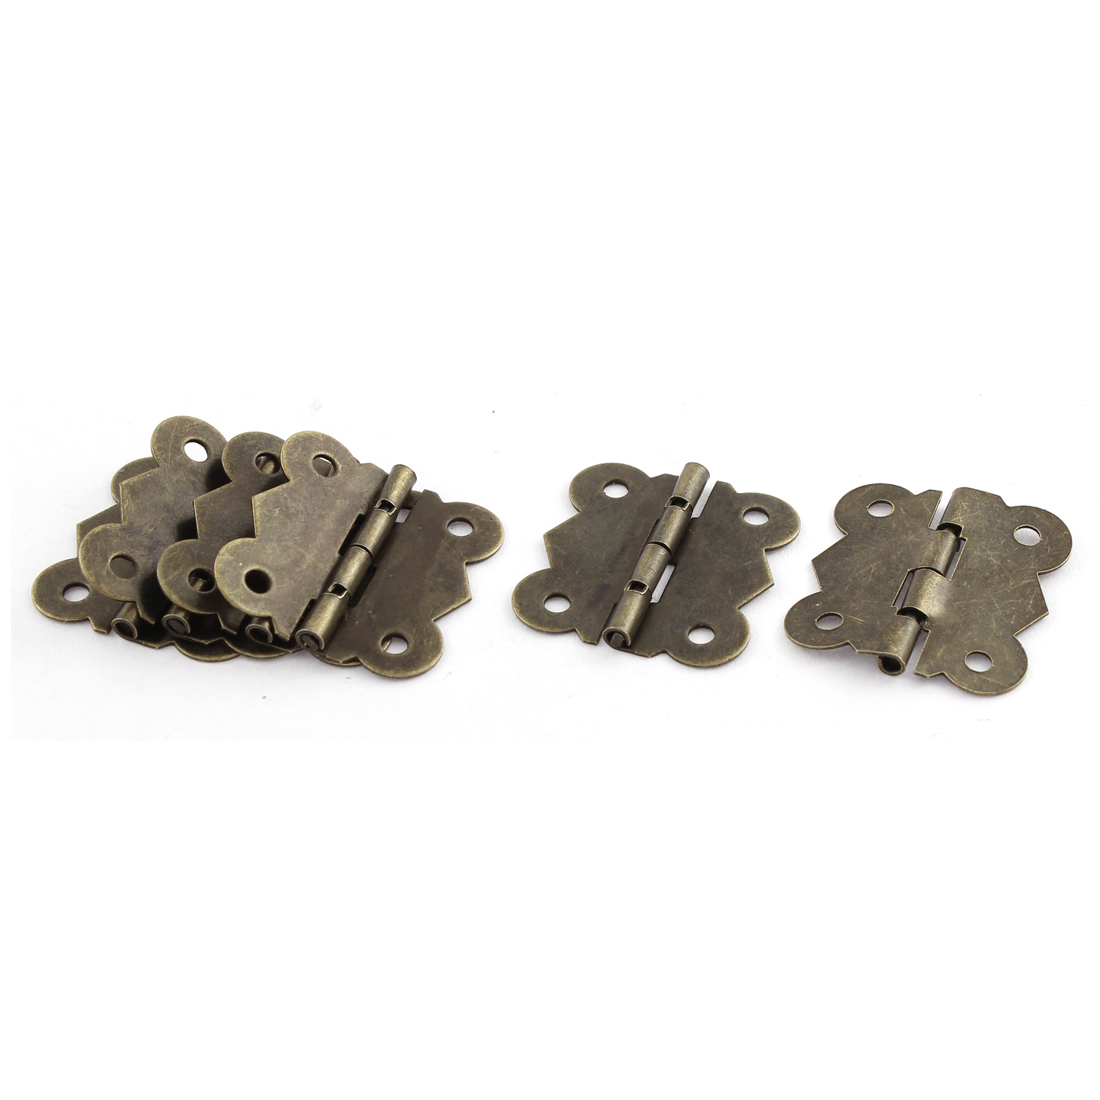 5 Pcs Bronze Tone 4 Holes Butterfly Design Cabinet Box Door Hinge